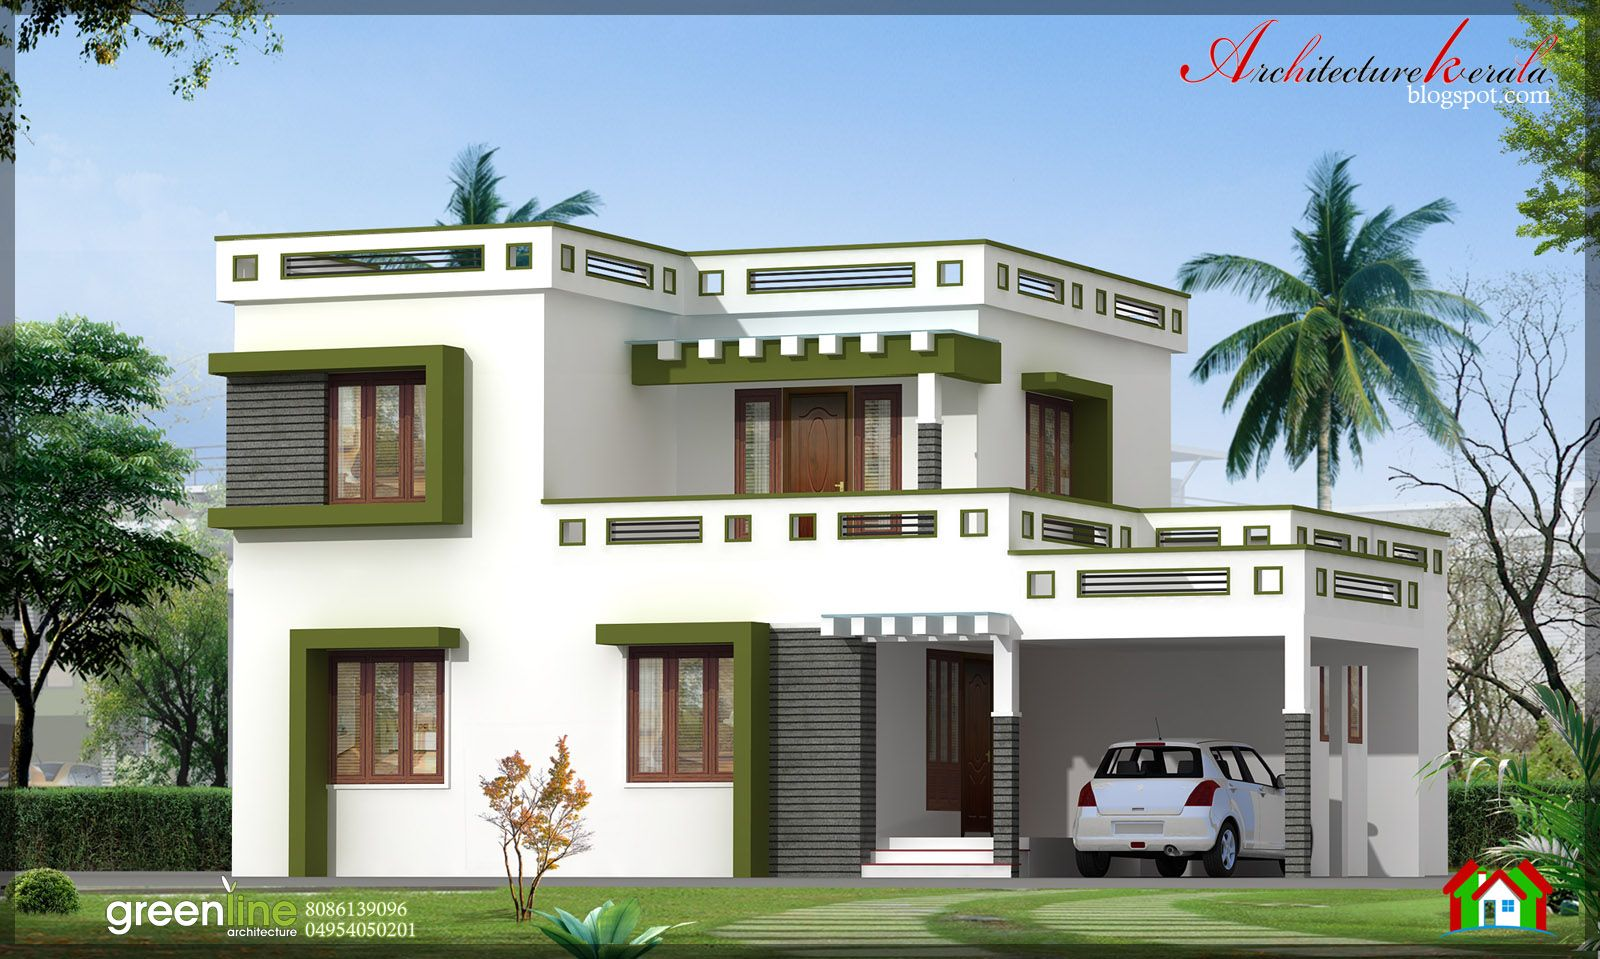 Kerala Style Low Cost Double Storied Home: Kerala House Plan Photos And Its Elevations, Contemporary